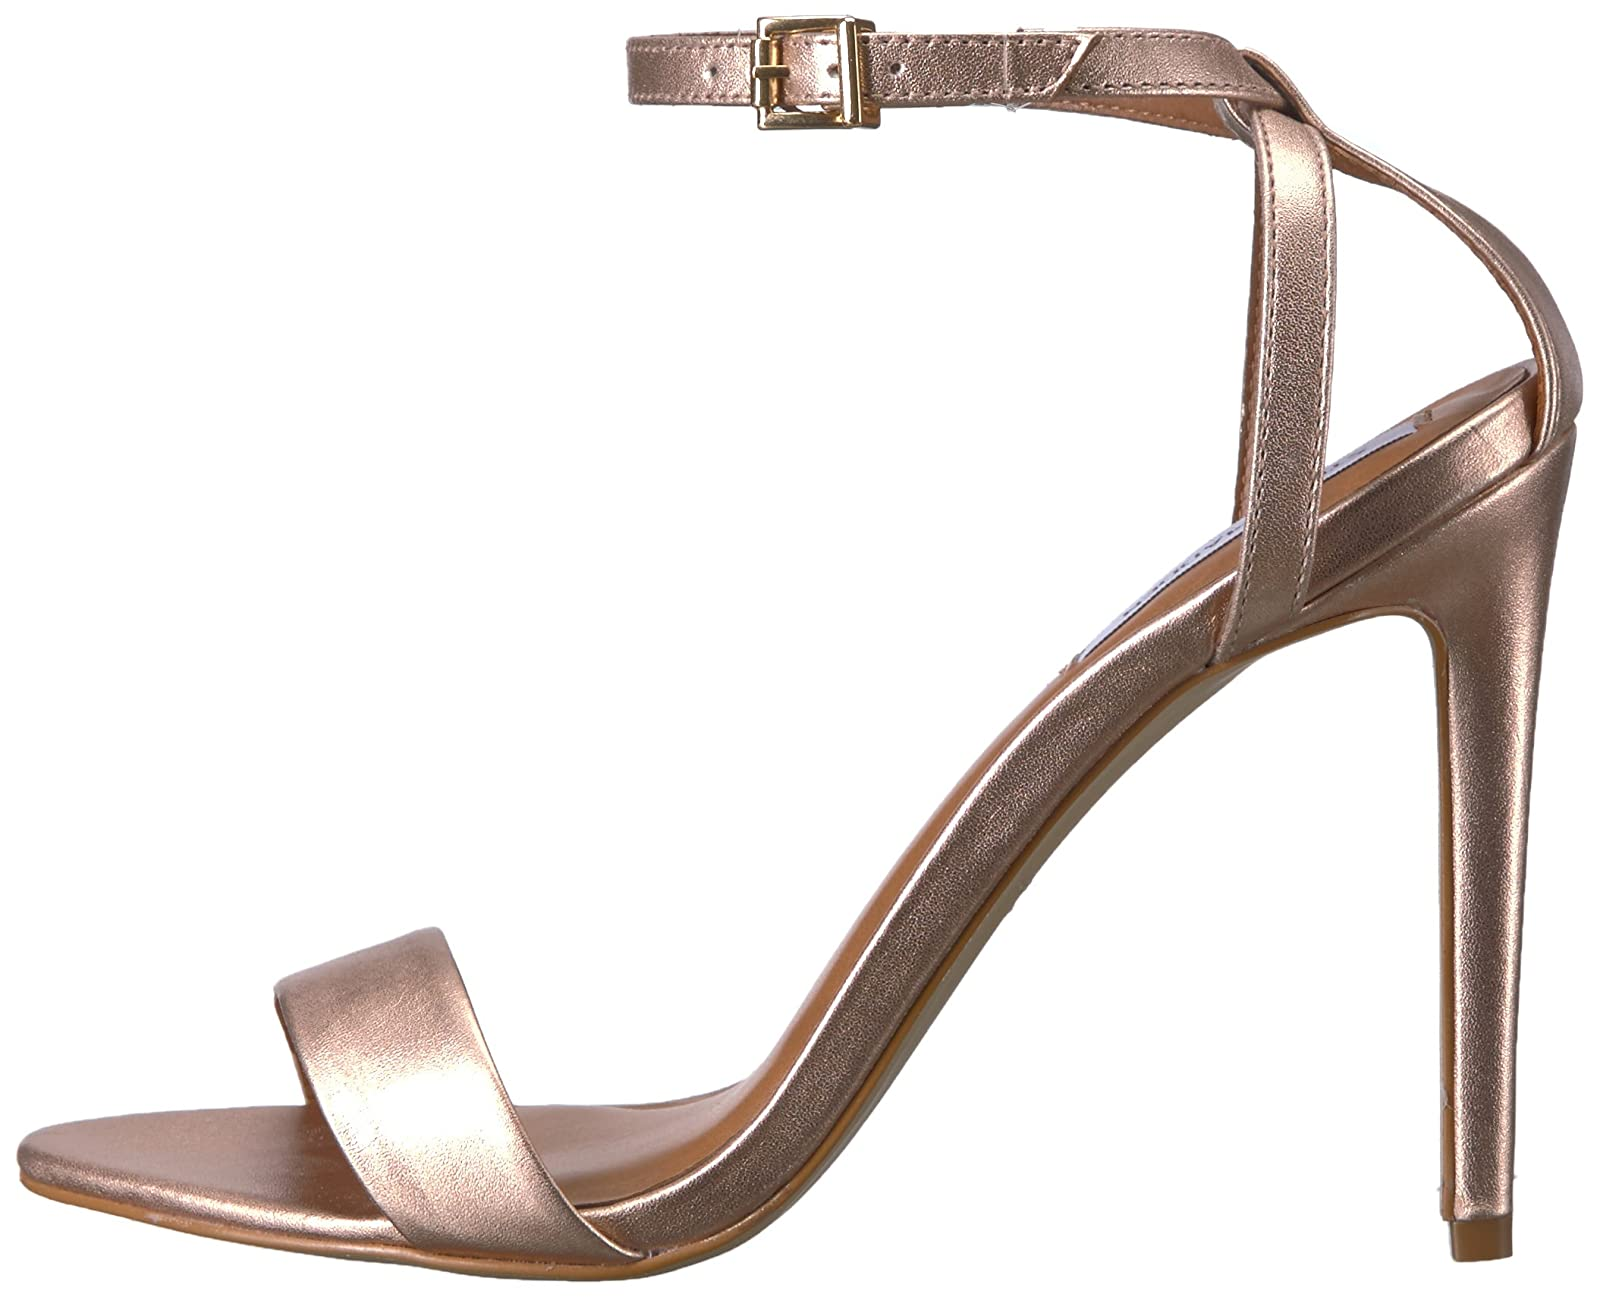 Steve Madden Women's Lacey Heeled Sandal LACE01S1 - 5